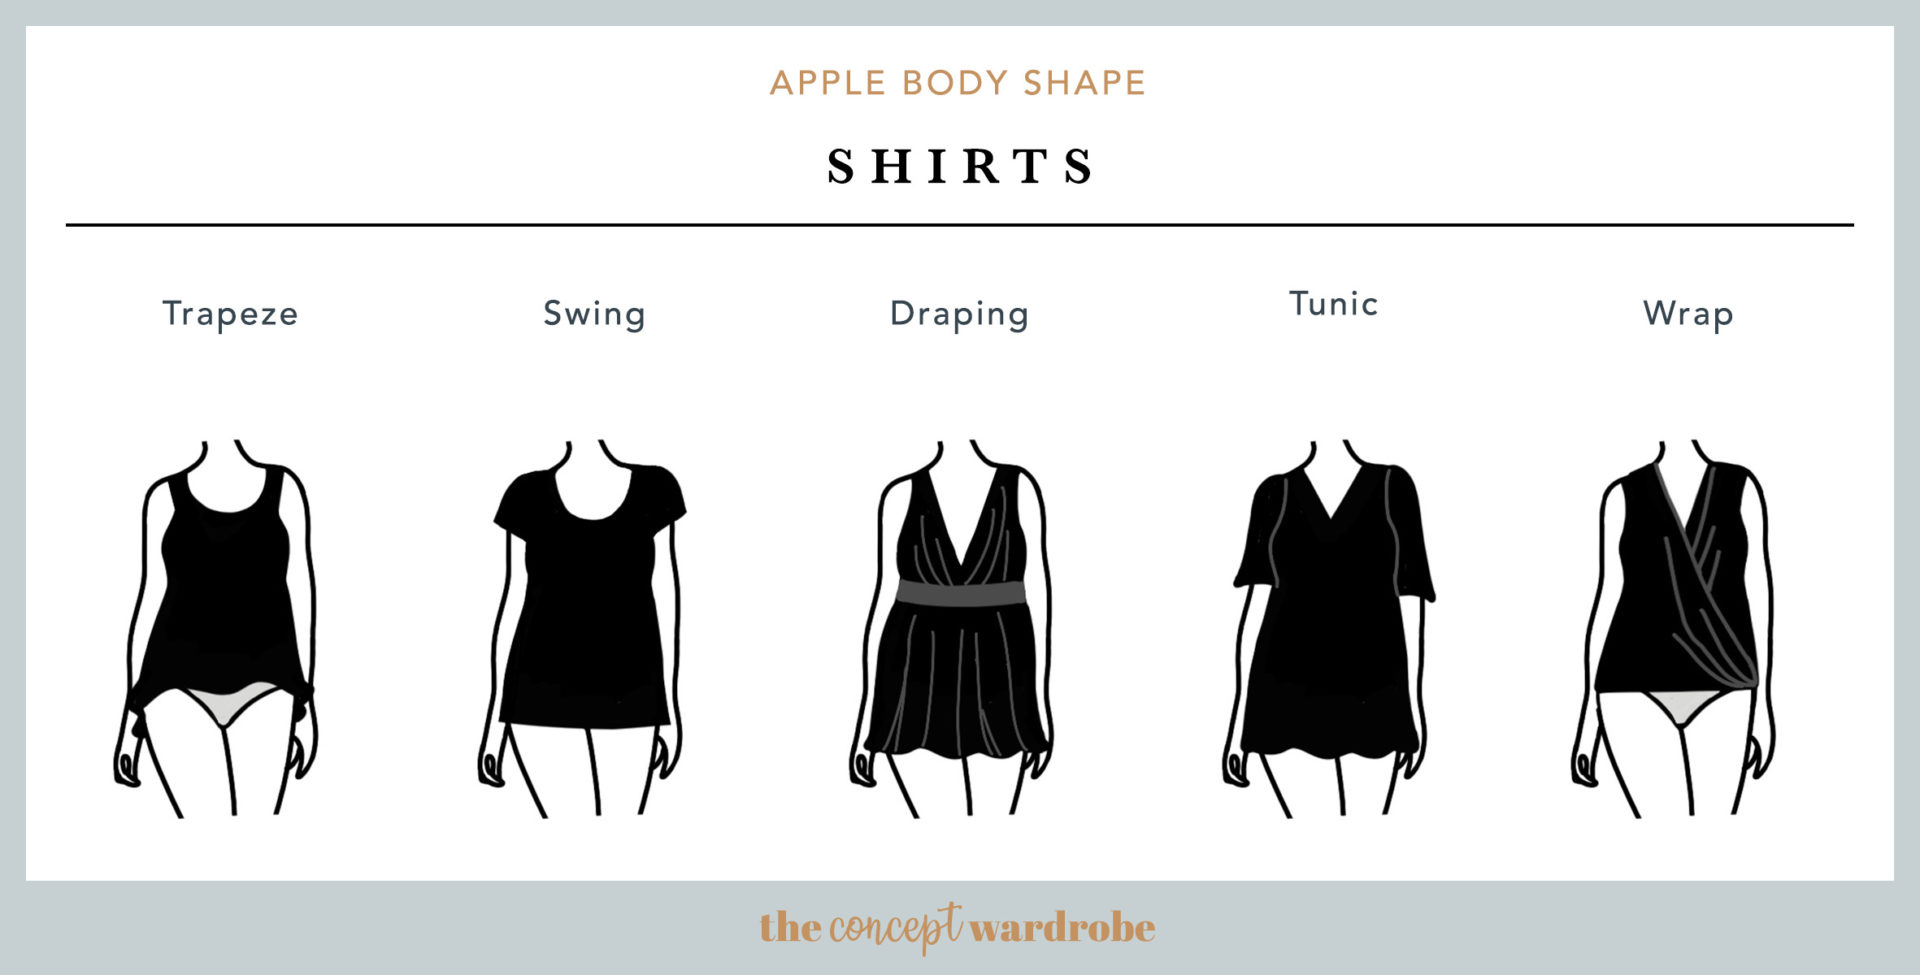 Apple Body Shape Shirts - the concept wardrobe